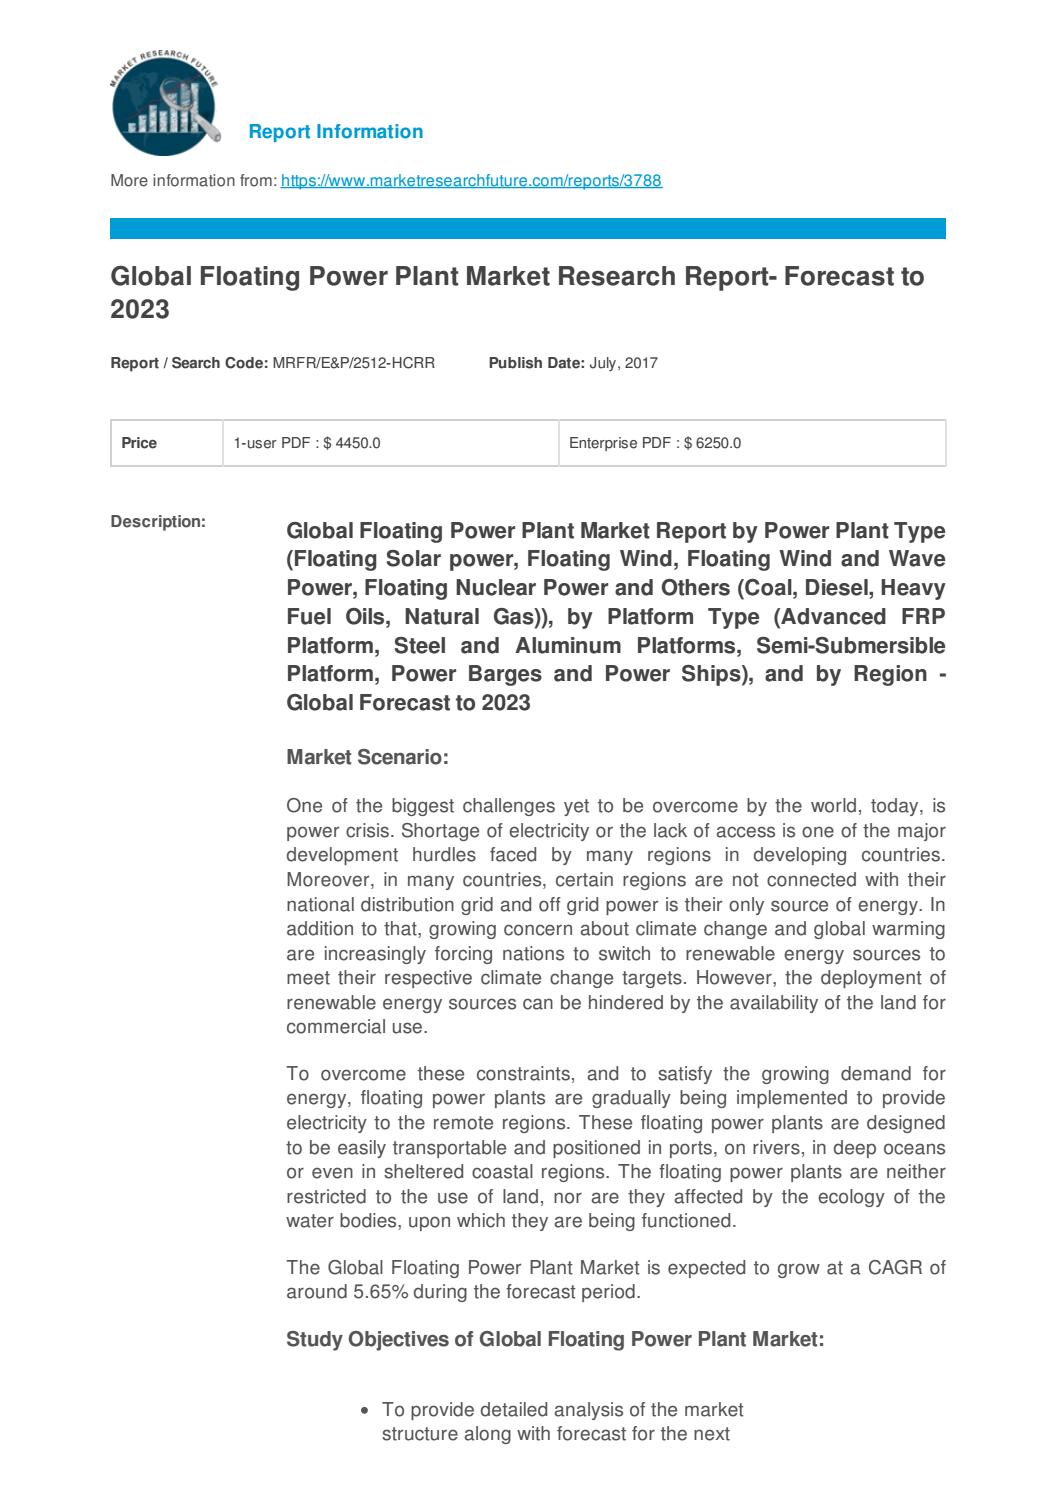 Global floating power plant market research report forecast